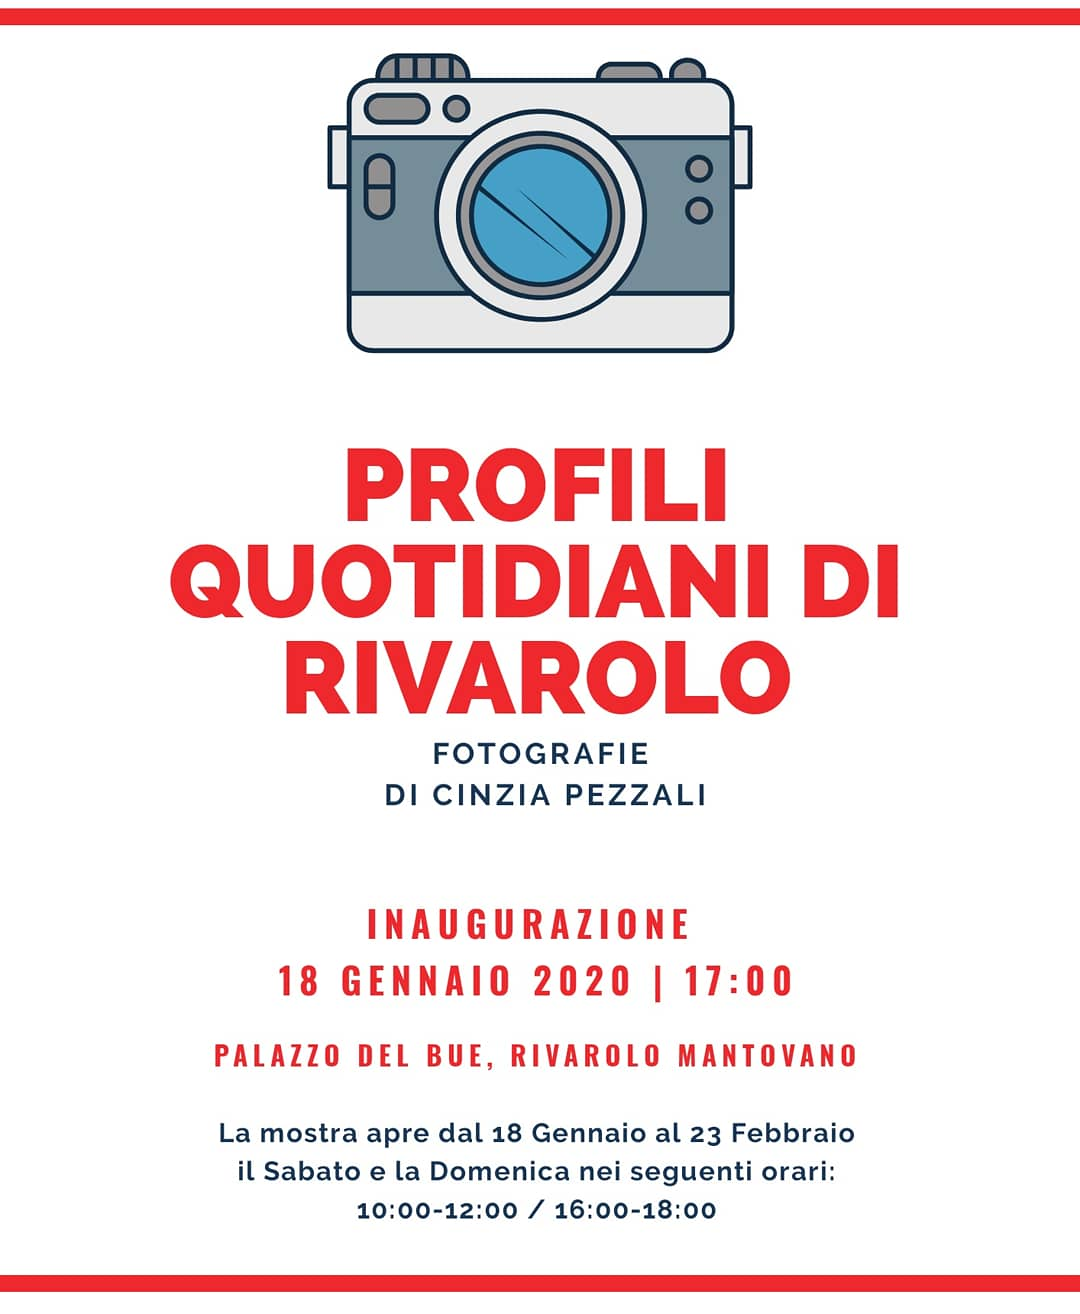 Profili quotidiani di Rivarolo